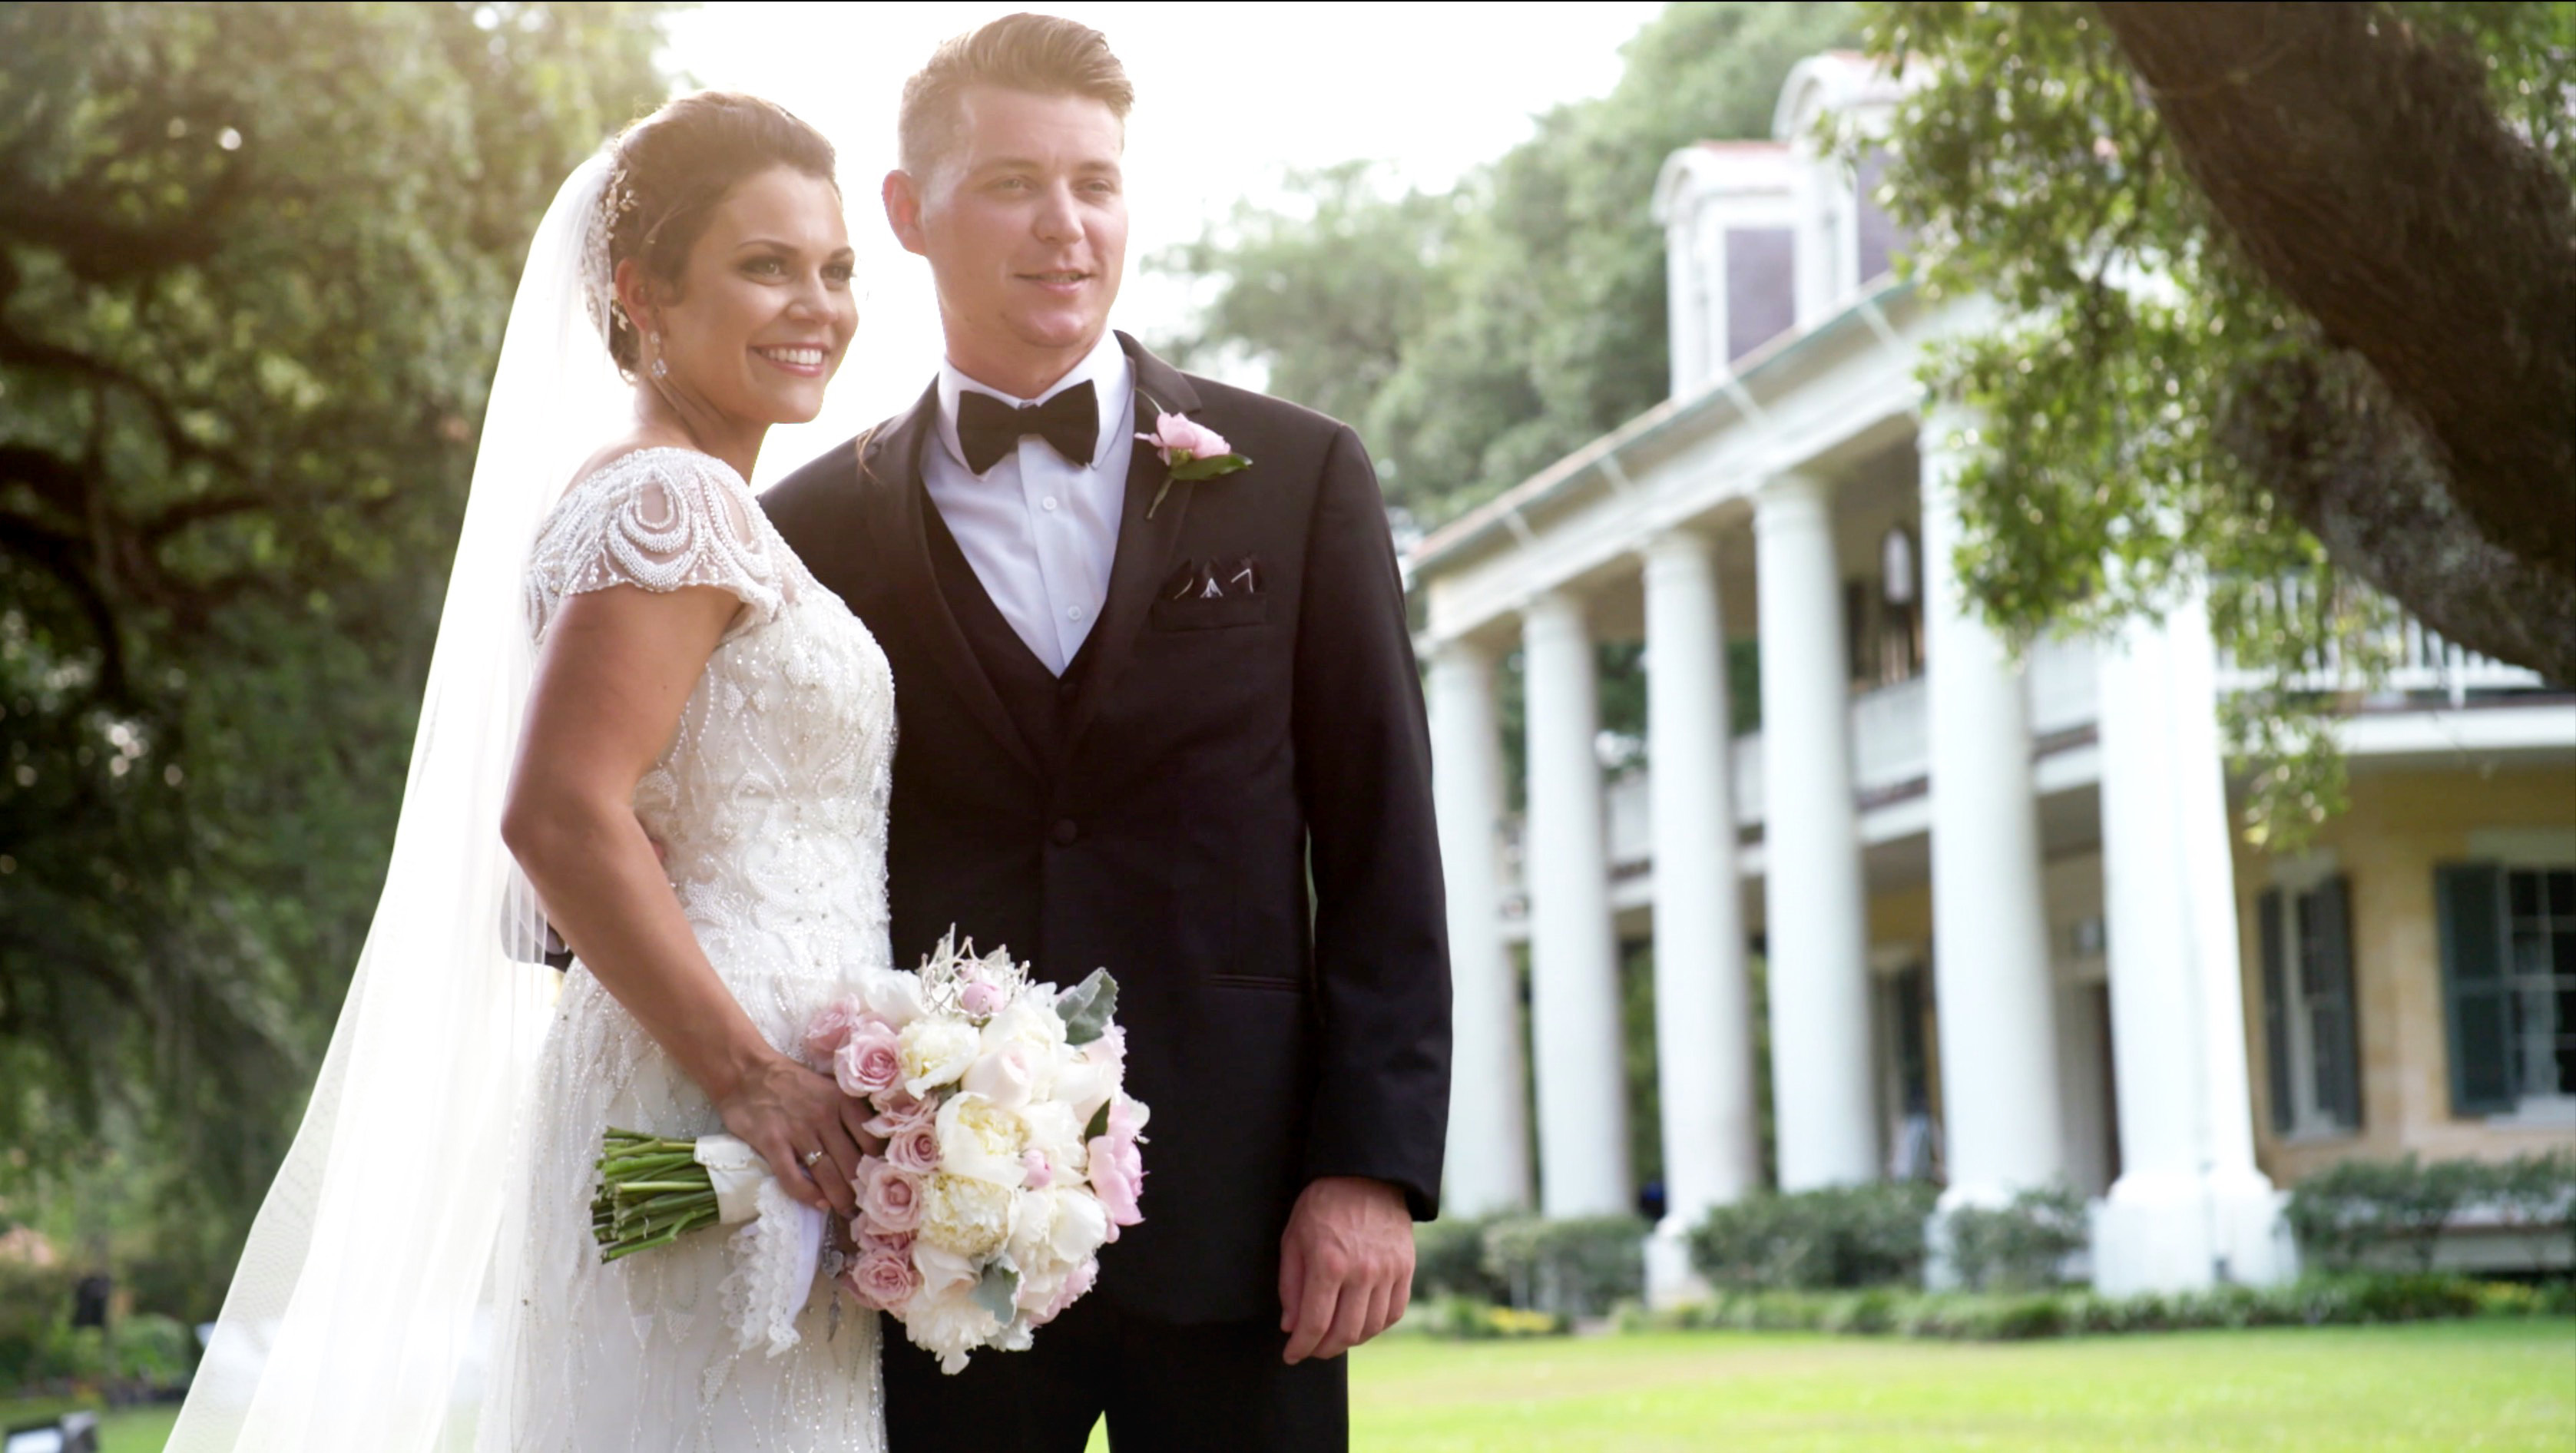 Client - Keri & Garrett Kent Wedding Film (6 min.), Location - Houmas House Plantation, Date - May 26, 2018